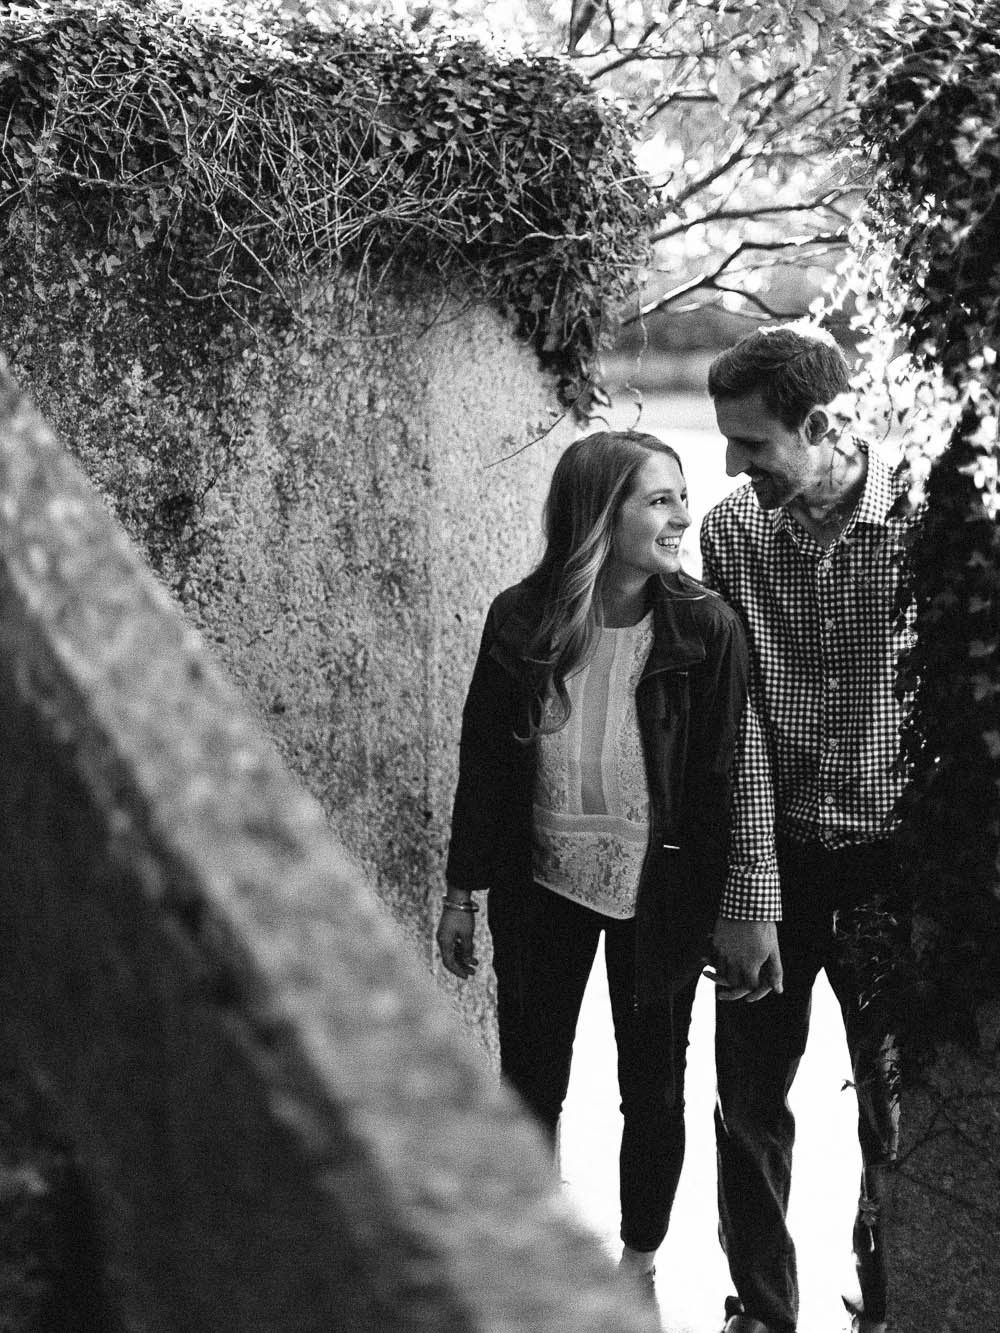 cheekwood film engagement photography natural warm real wedding photographer ©2016abigailbobophotography-1-2.jpg